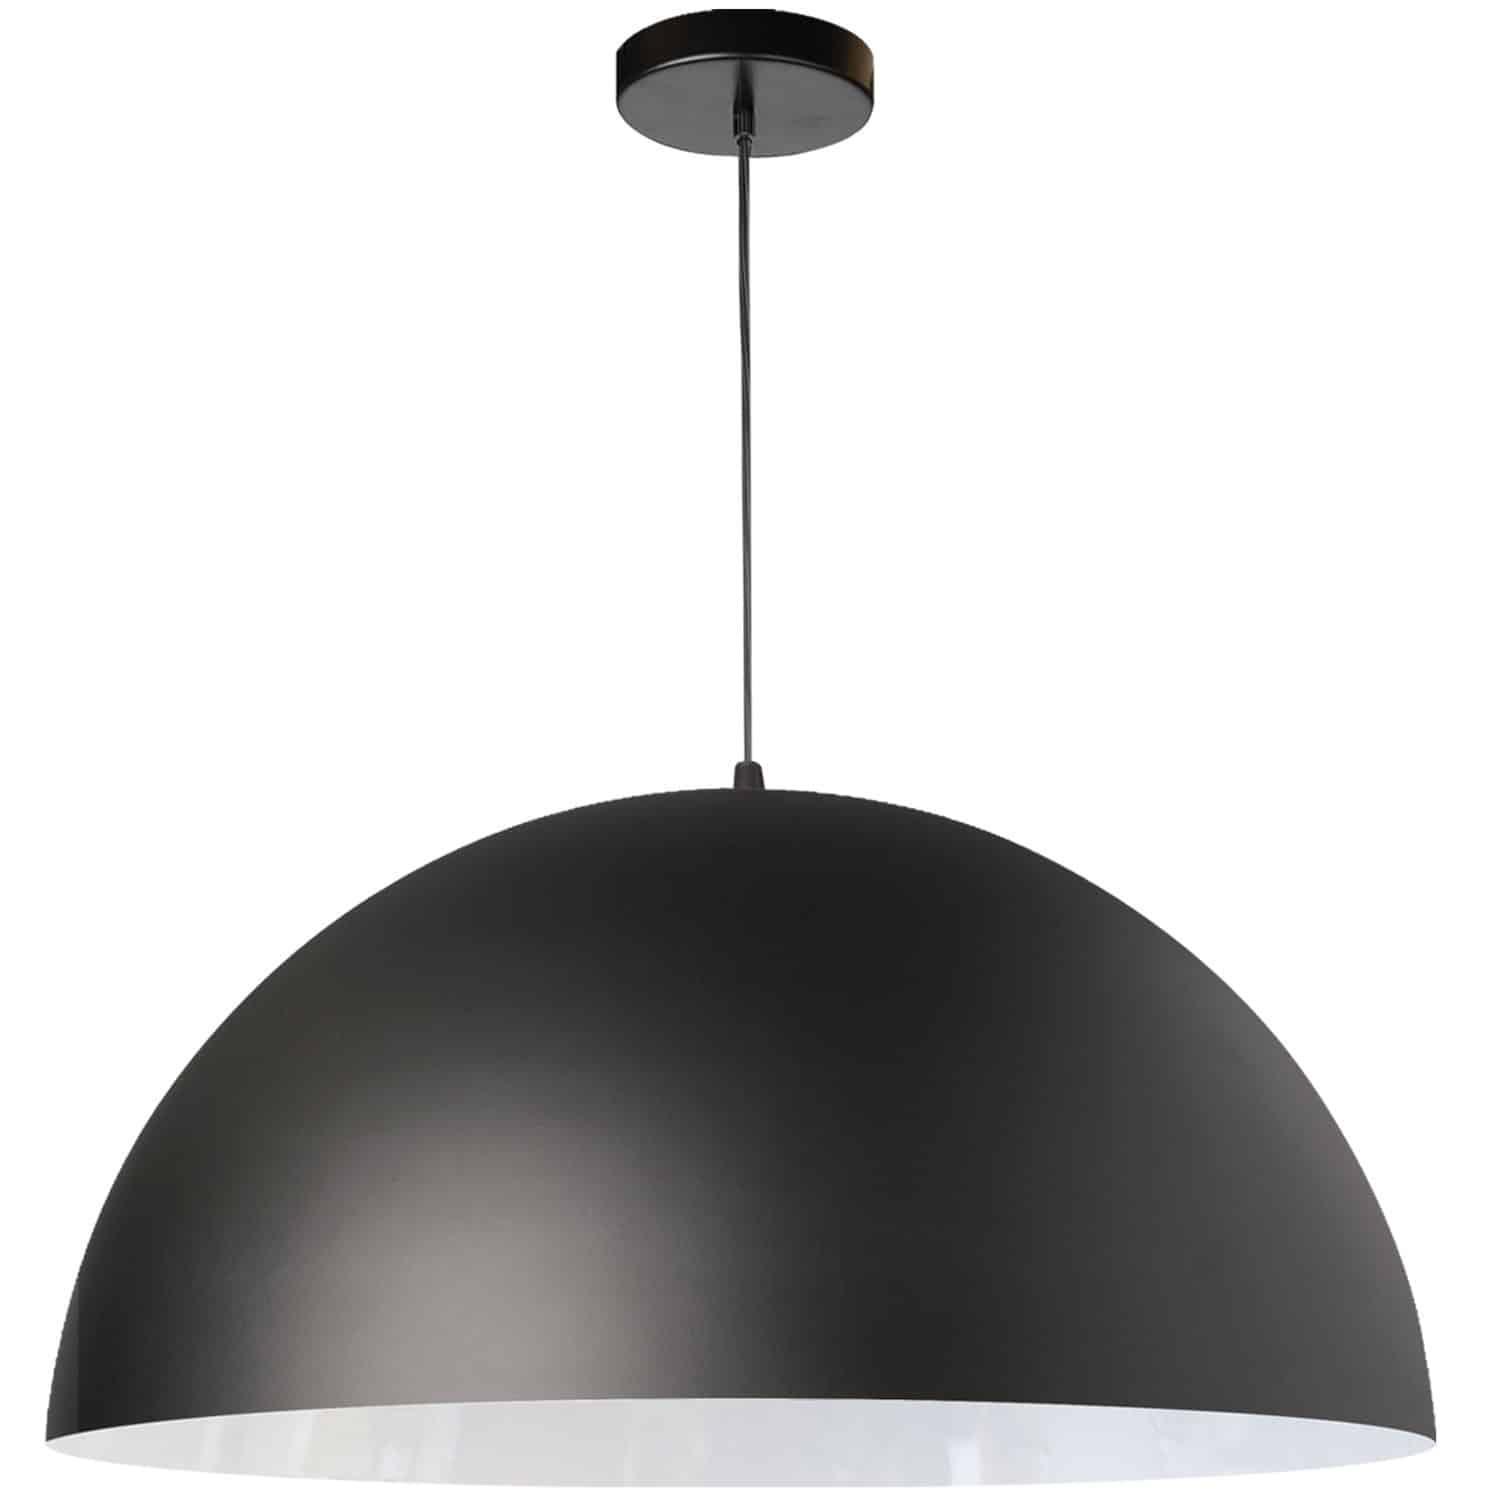 1 Light Incandescent Large Dome Pendant, Matte Black